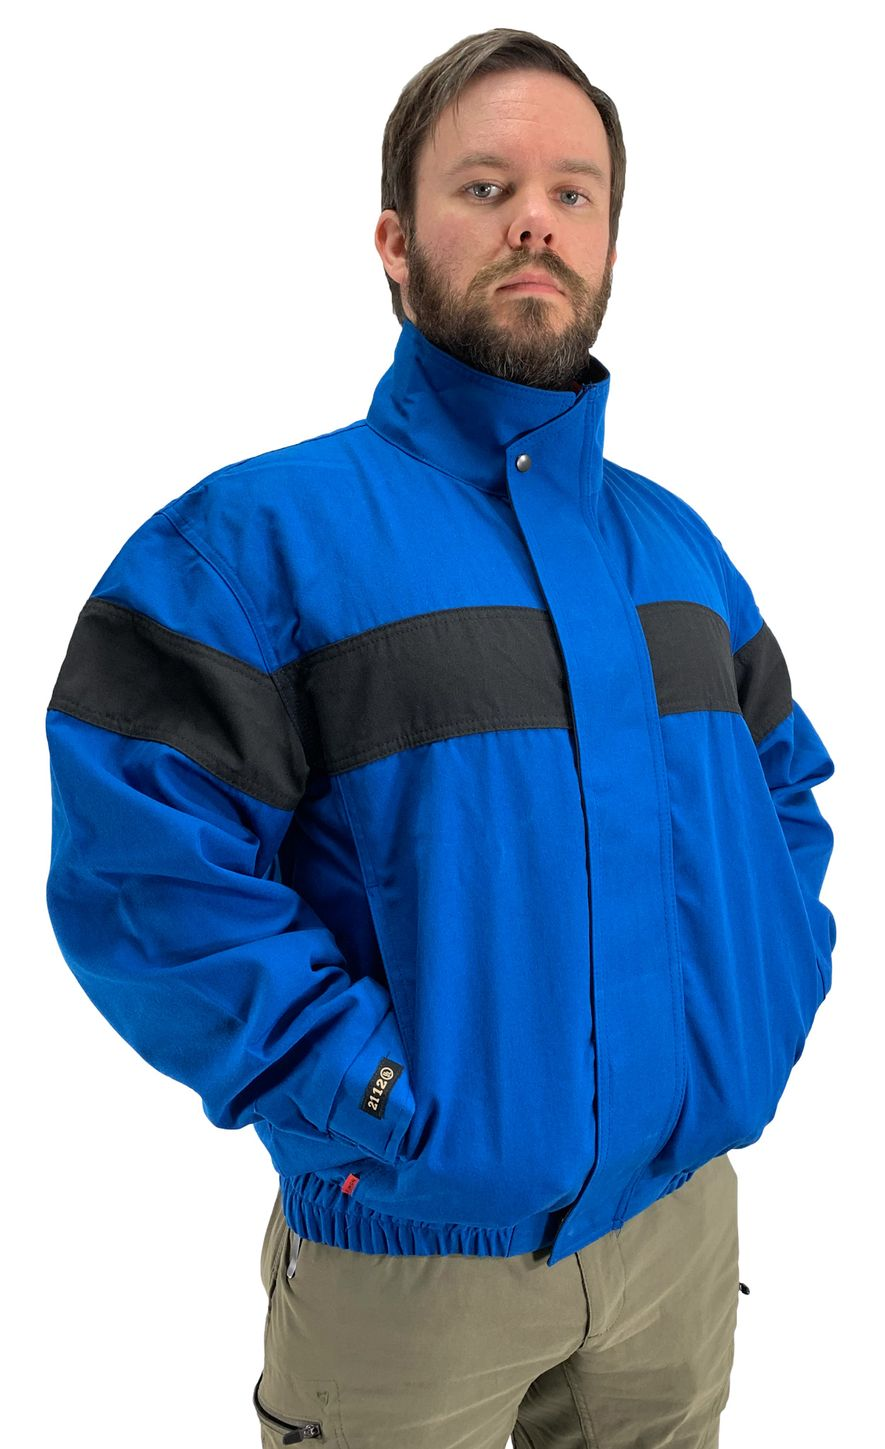 Workrite Fire Resistant Safety Jacket 300NX60/3006 - 6 oz Nomex® IIIA Royal Blue Front